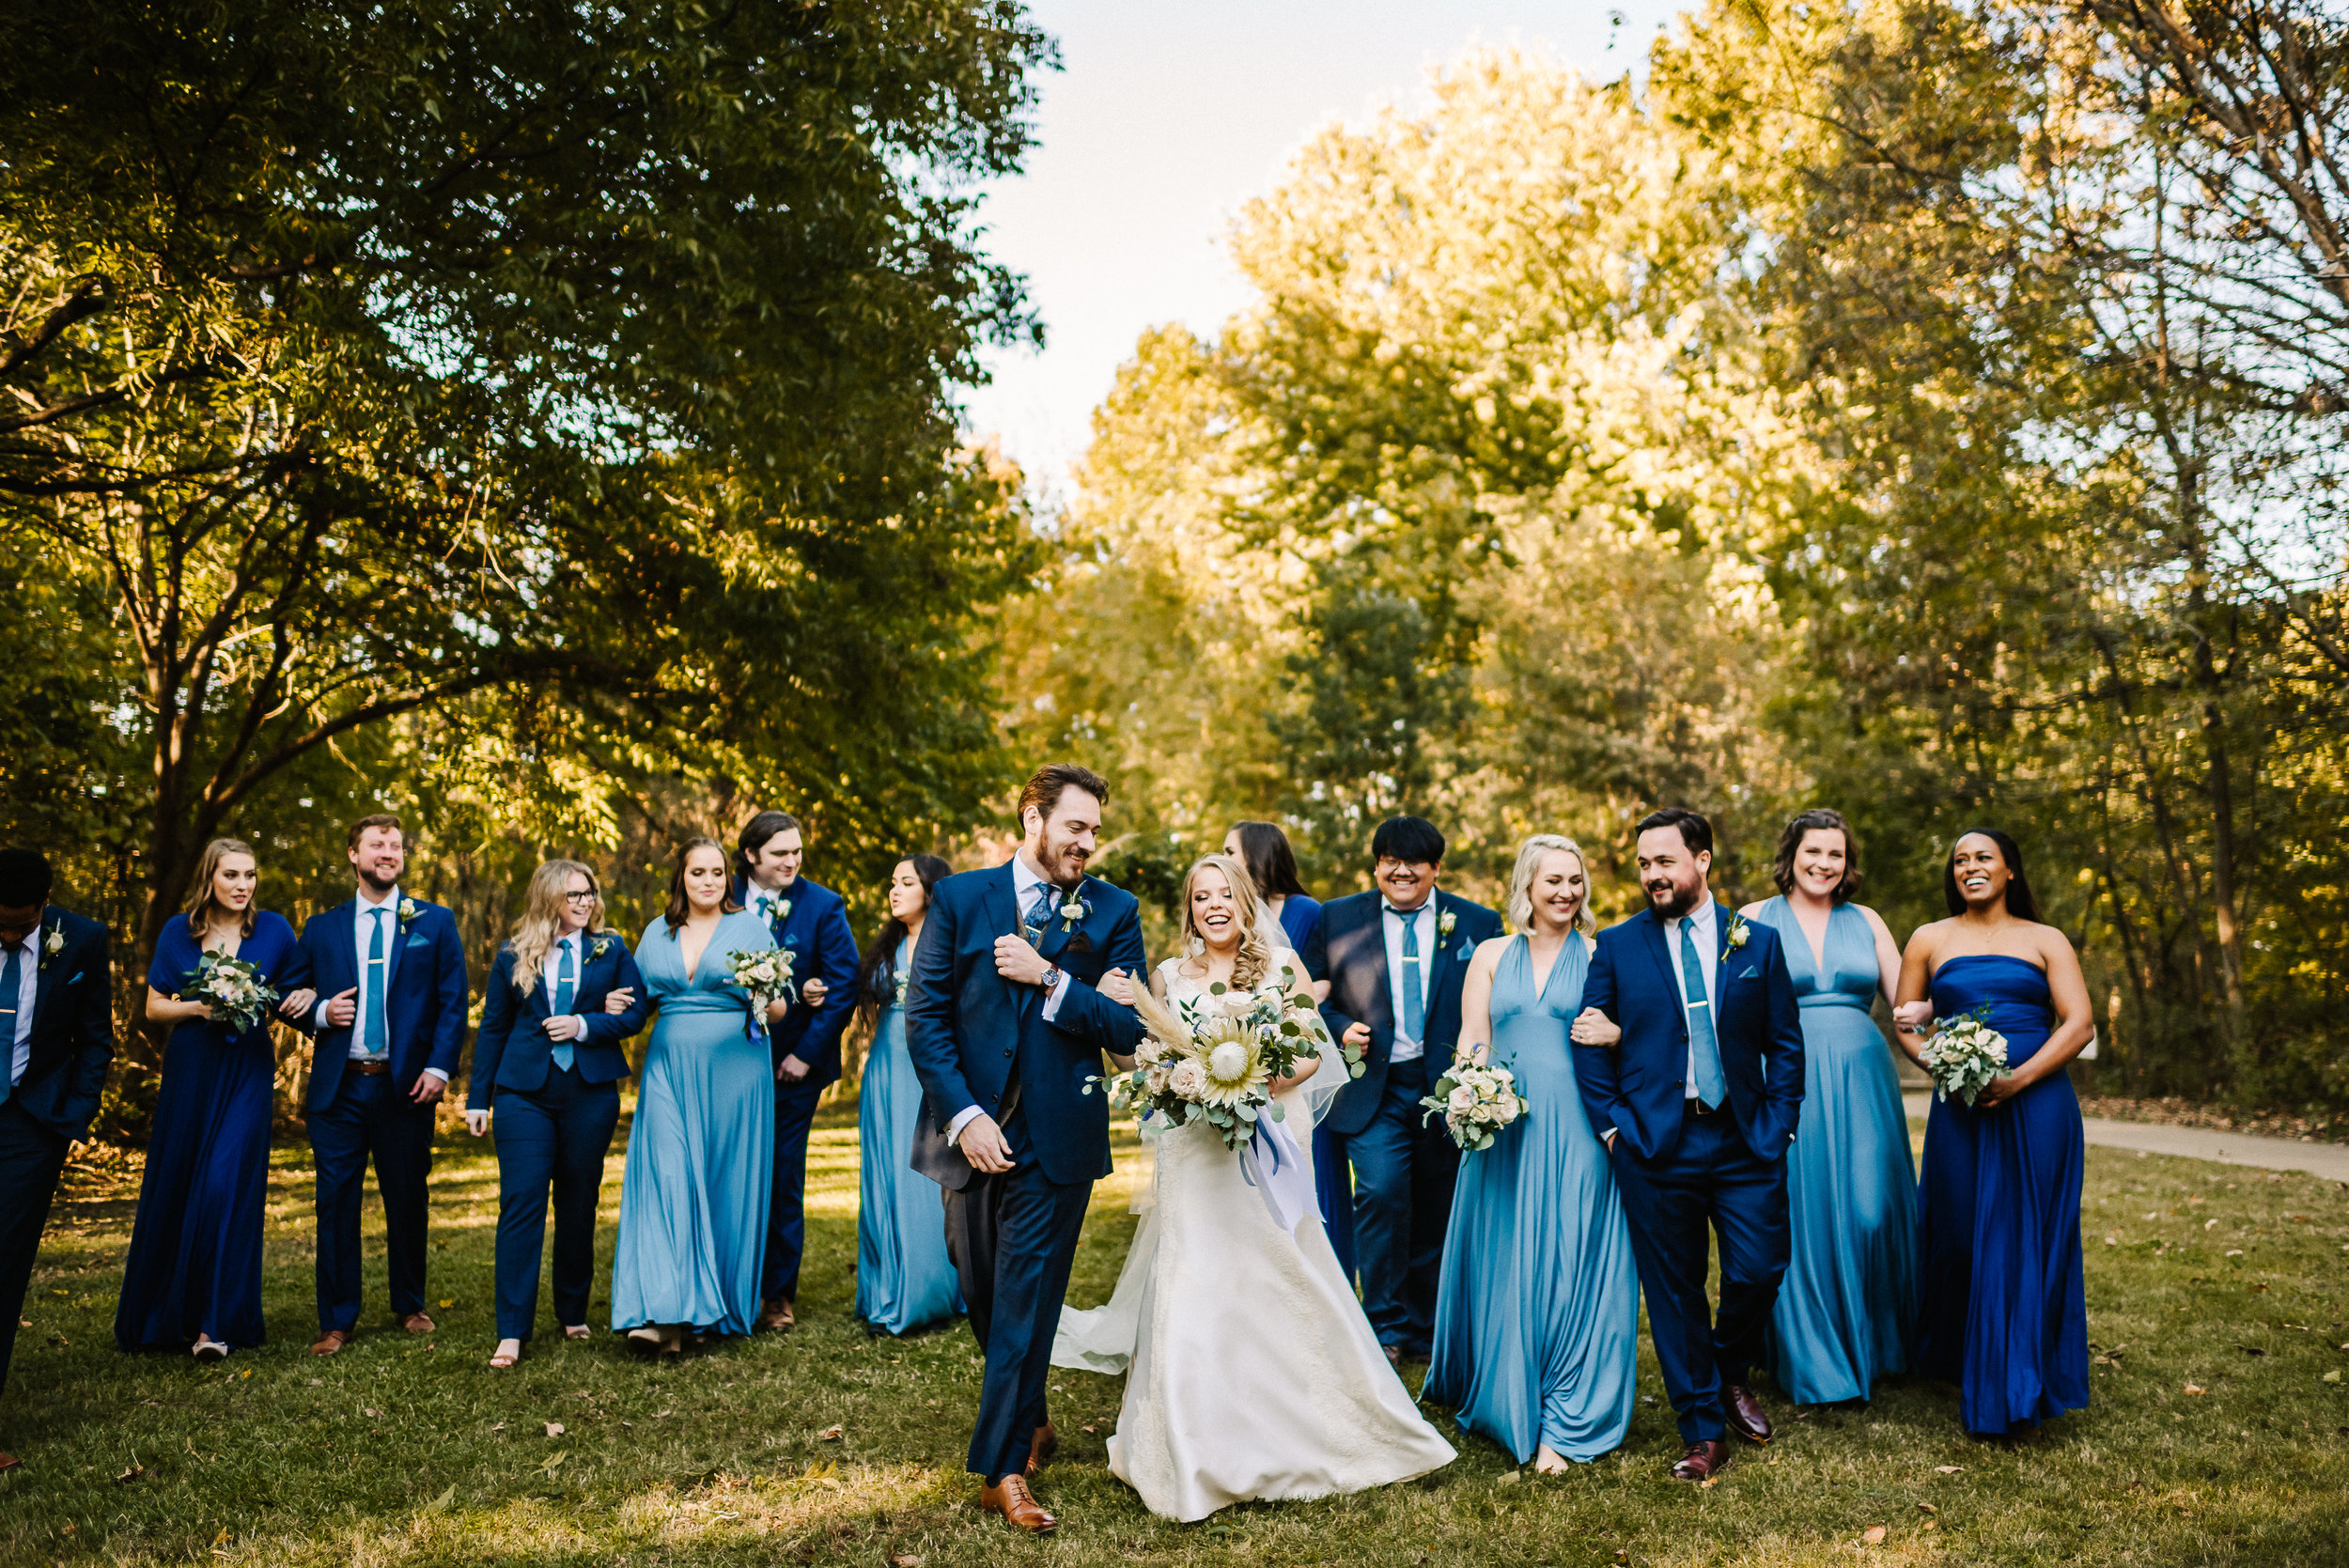 Lichterman Nature Center Wedding_La Croix Wedding_Ashley Benham Photography-273.jpg